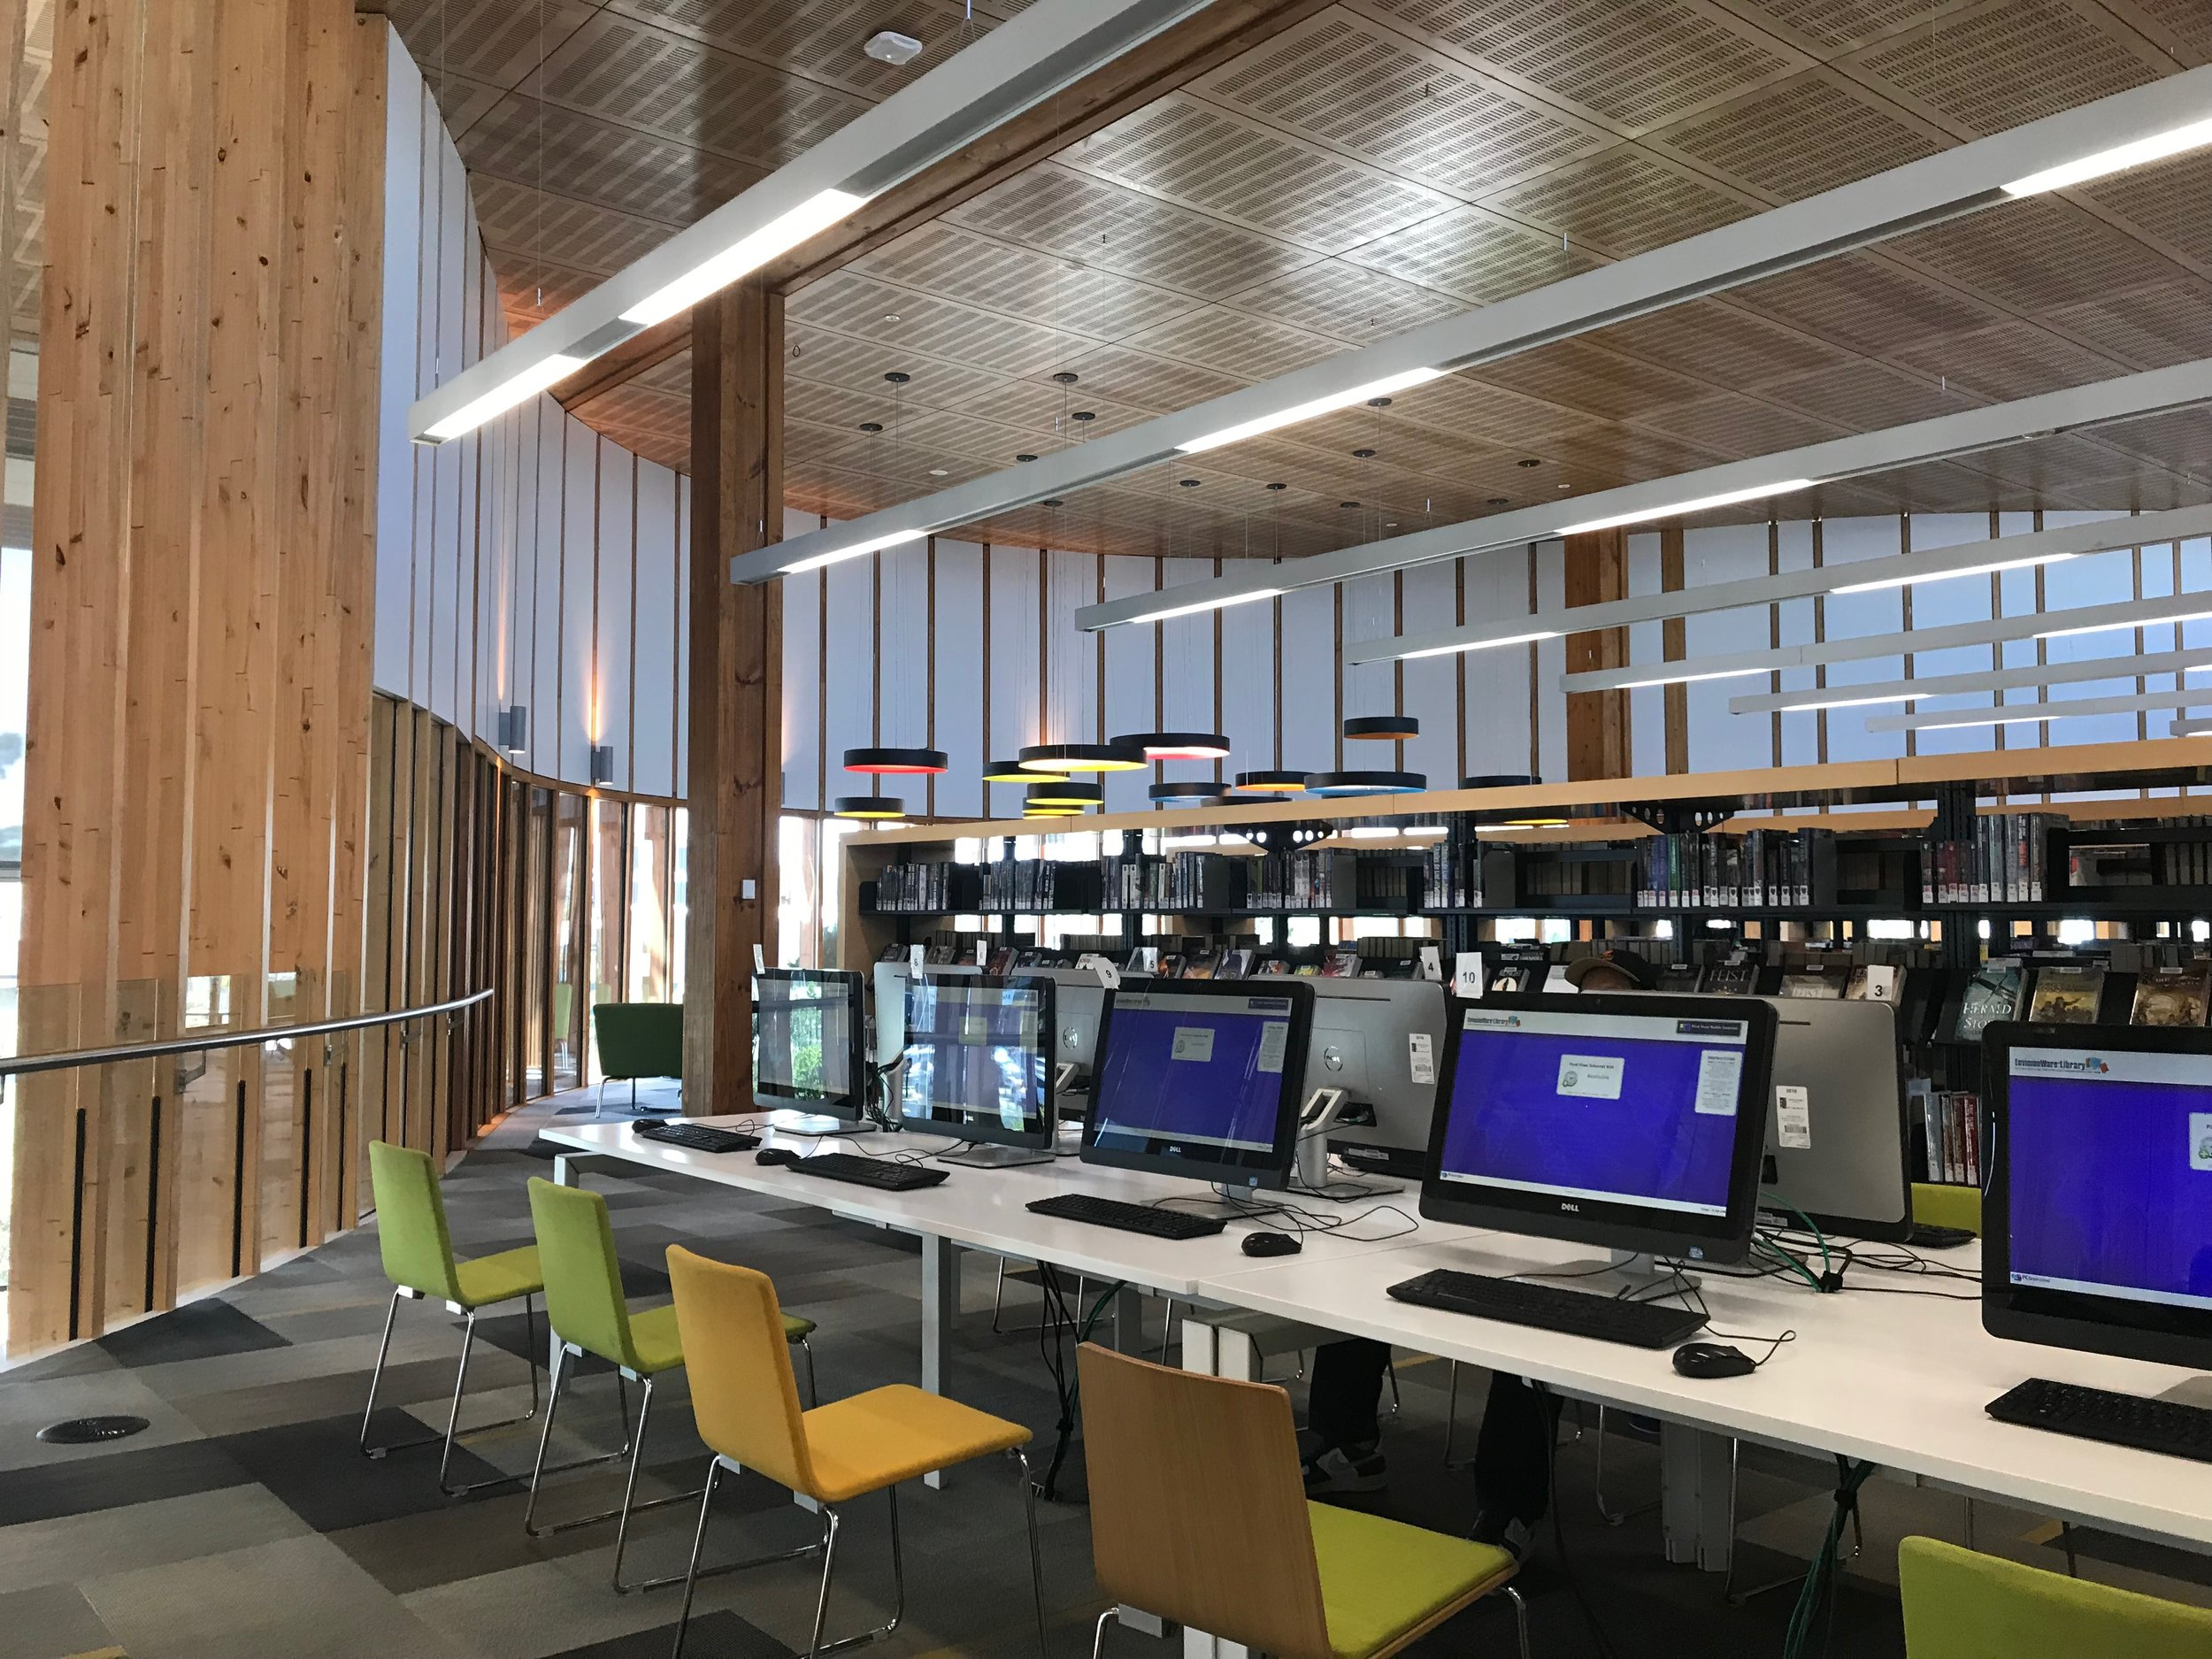 The library provides naturally lit study areas, computer areas, and quiet reading areas. There are green building features such as sensor lighting throughout.